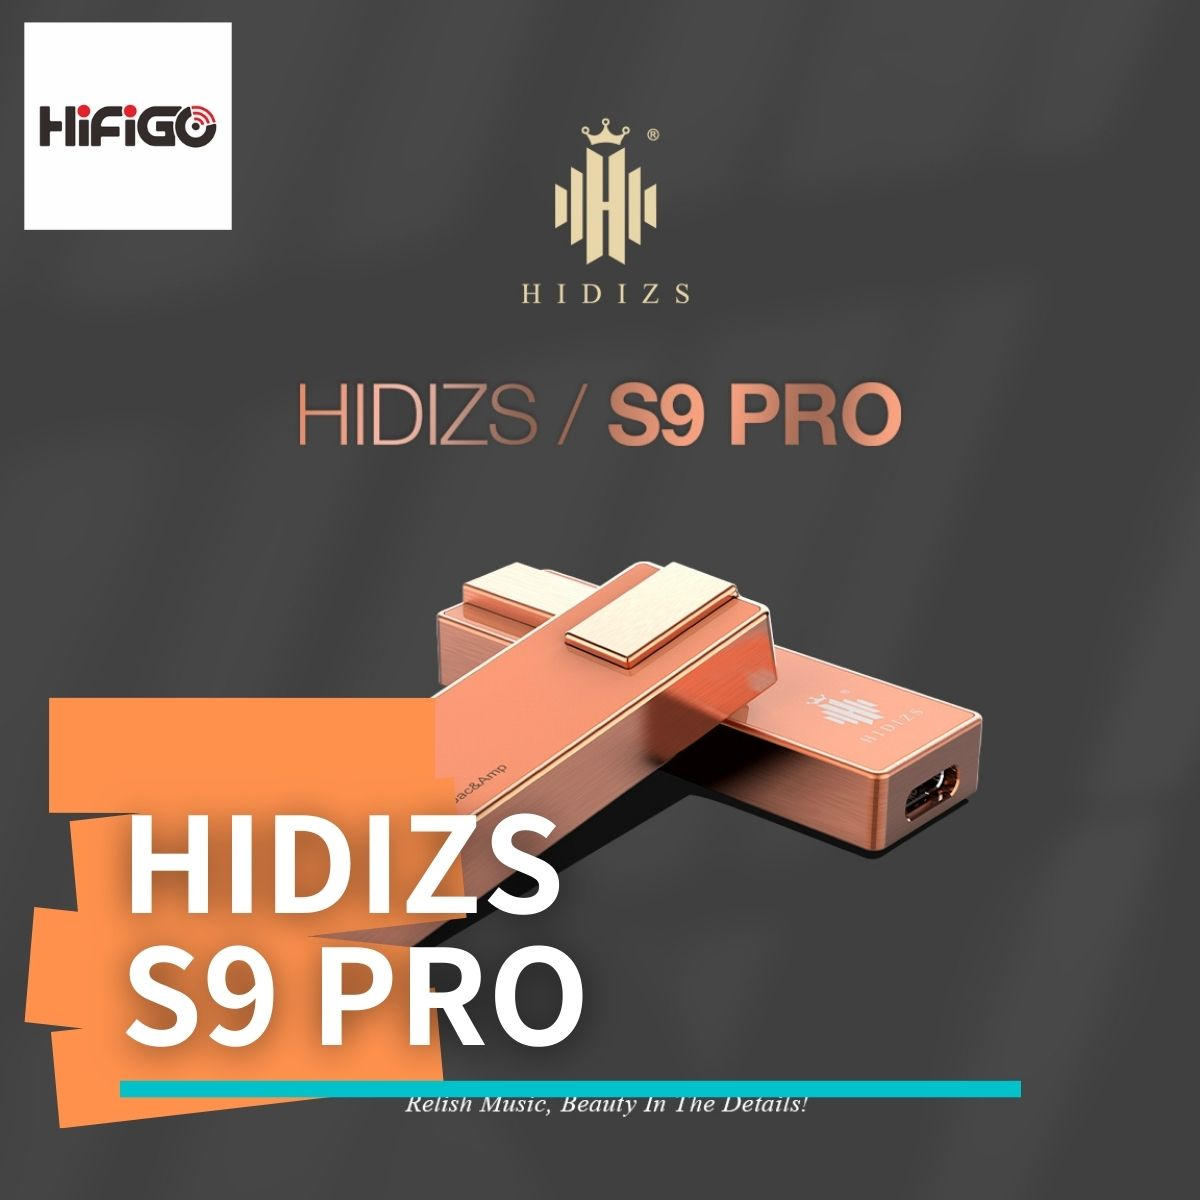 【HiFiGOニュース】Hidizs S9 Pro Red Copper Limited Edition:全世界で500台のみの限定販売